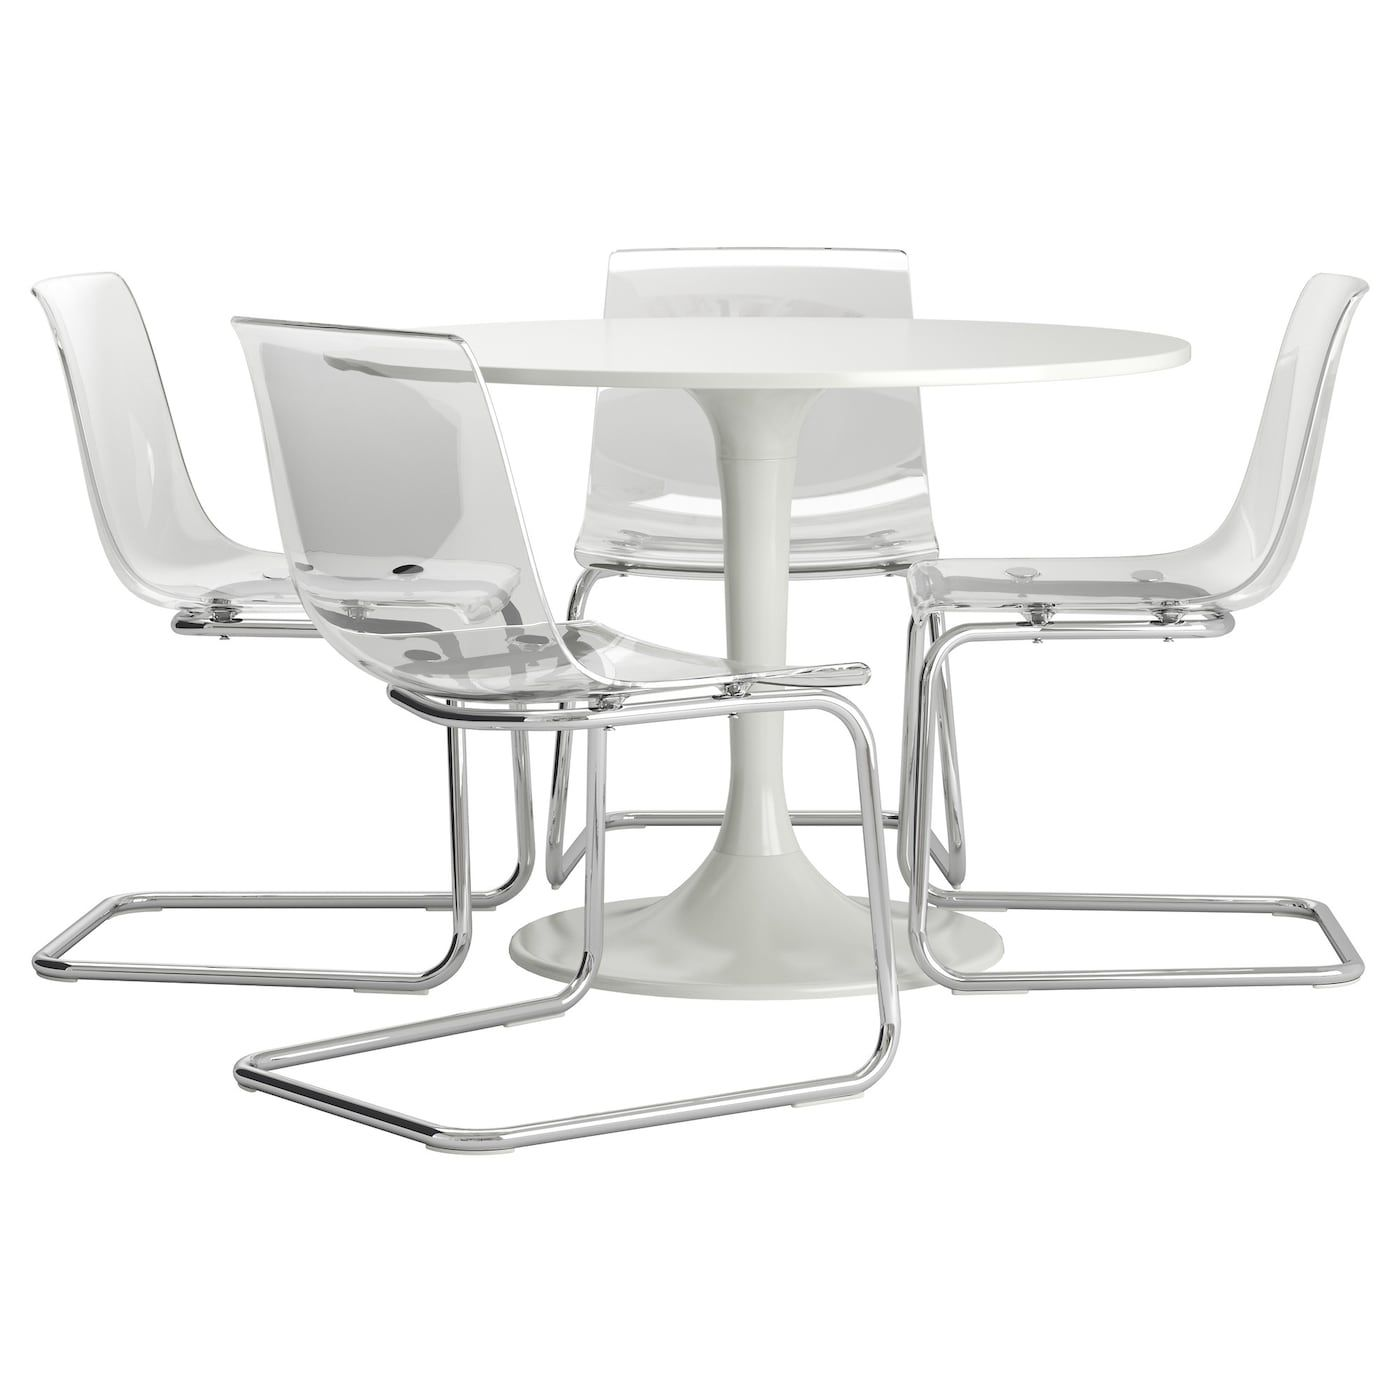 DOCKSTA / TOBIAS Table and 4 chairs, white, transparent. Find it here - IKEA